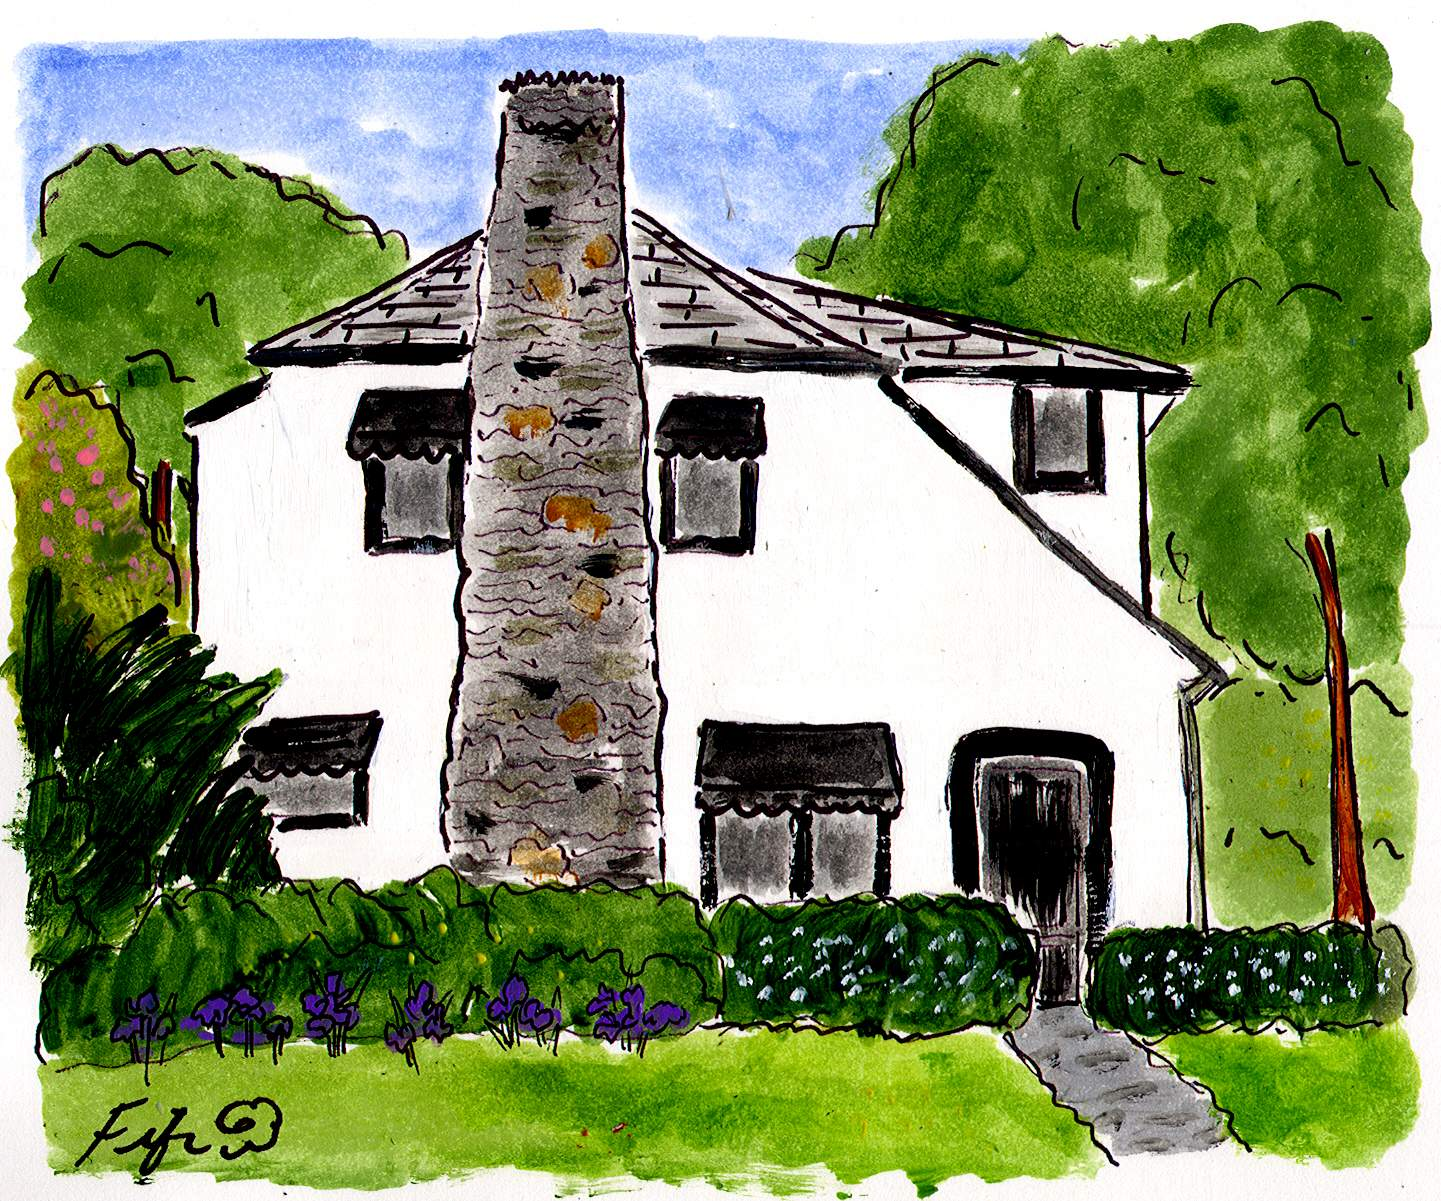 Hooked on House Portraits (& Giveaways!) - Hooked on Houses